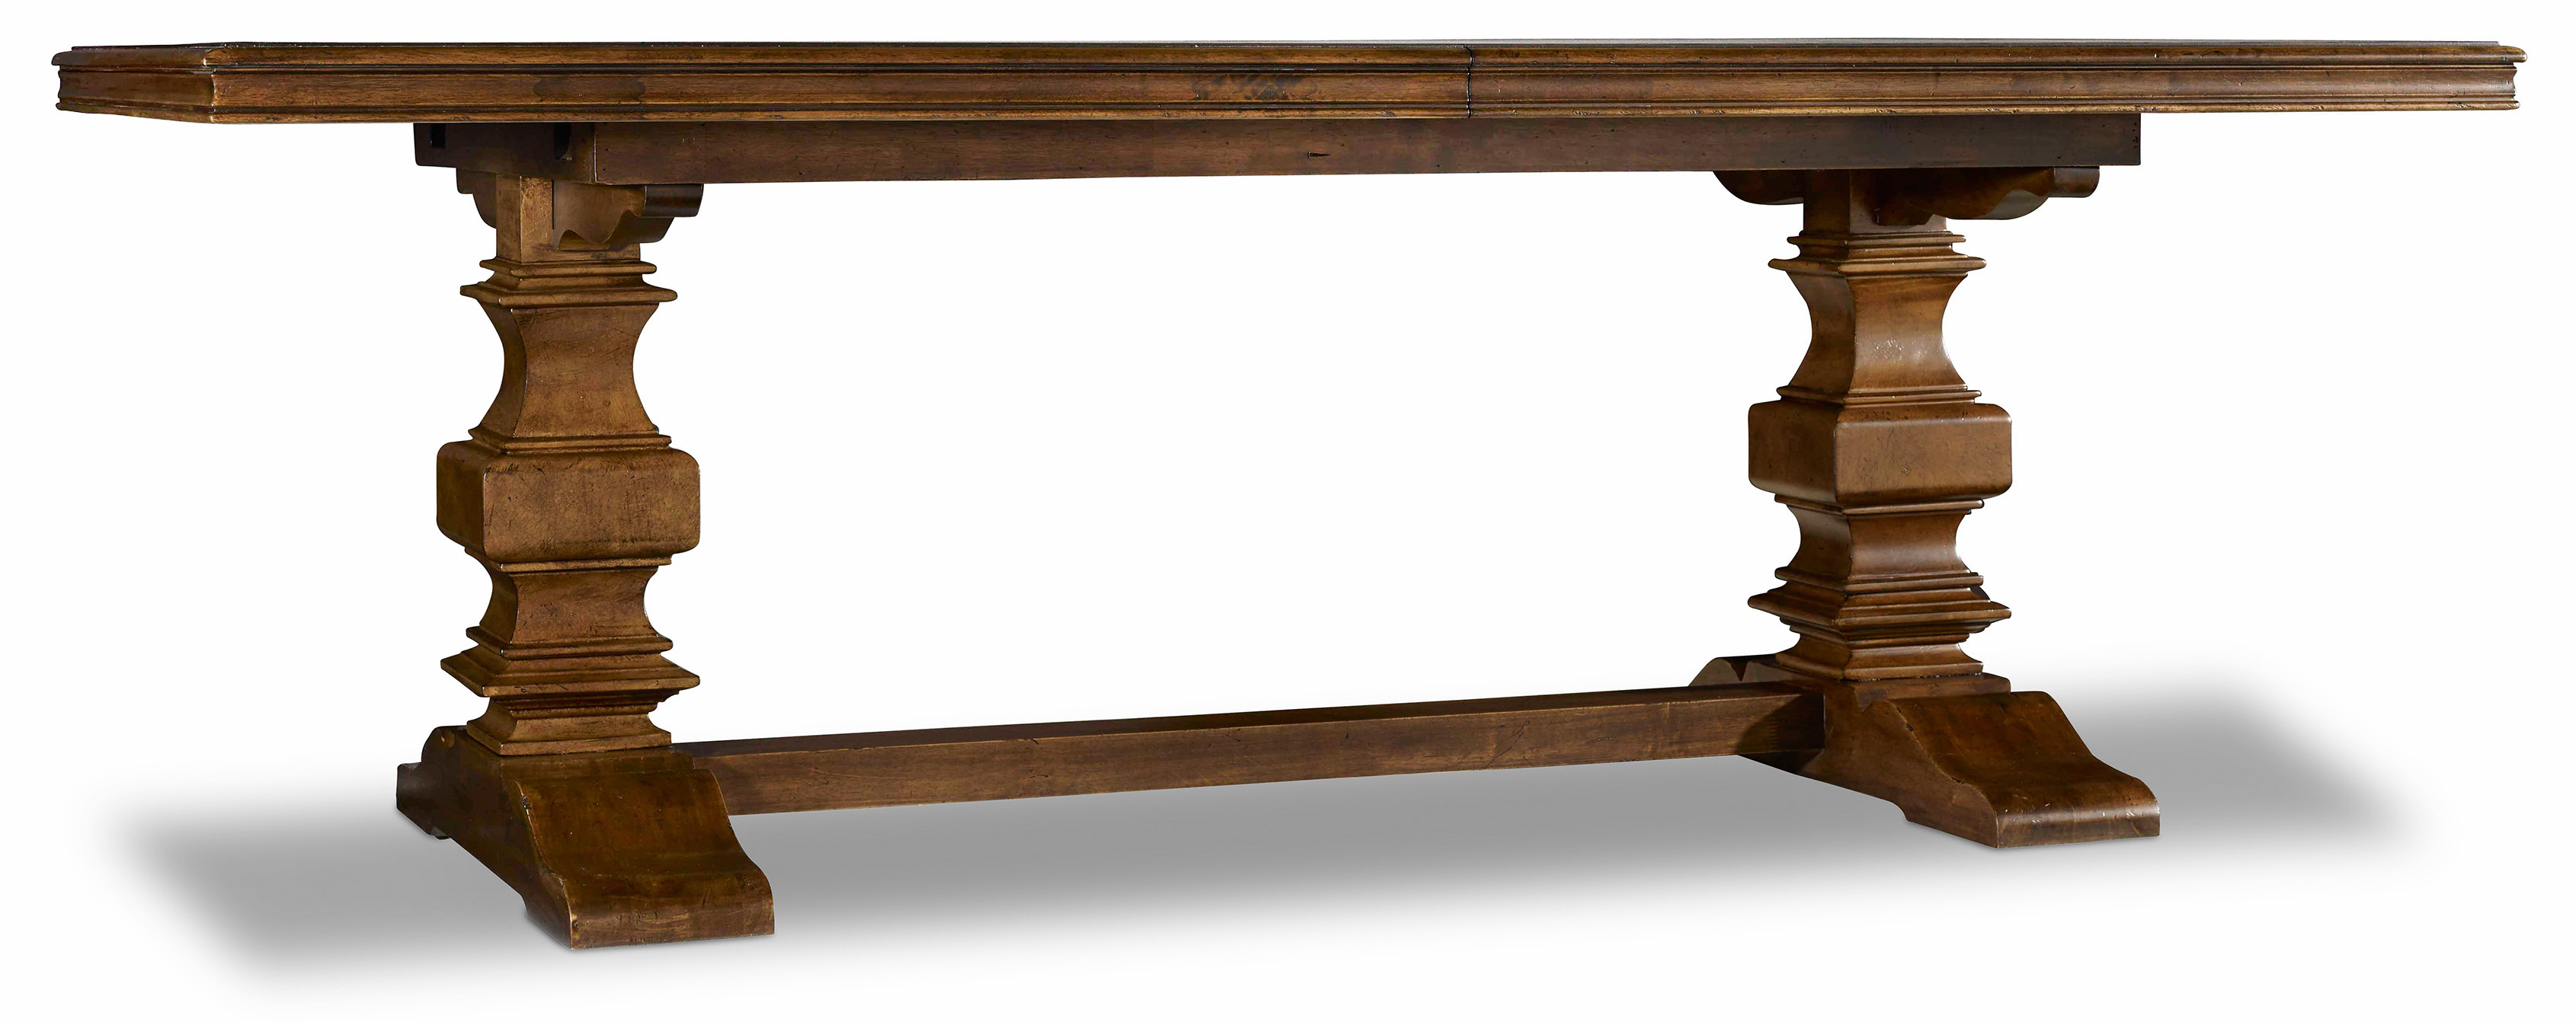 Archivist Trestle Table by Hooker Furniture at Miller Waldrop Furniture and Decor